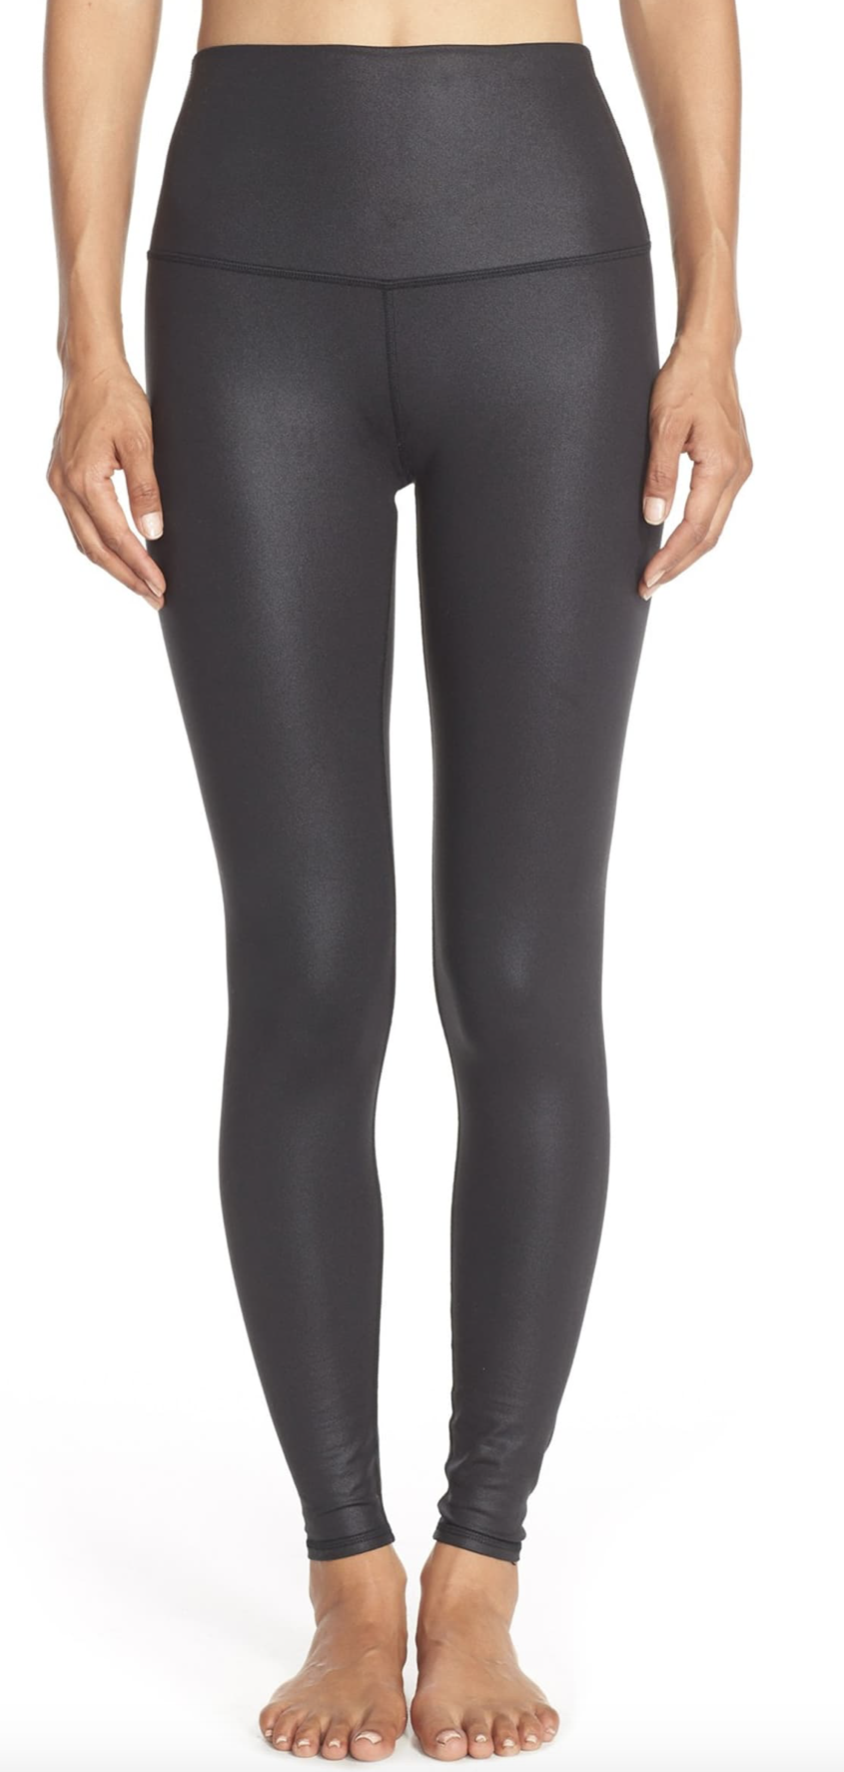 Alo Airbrush High Waist Leggings - $54.90